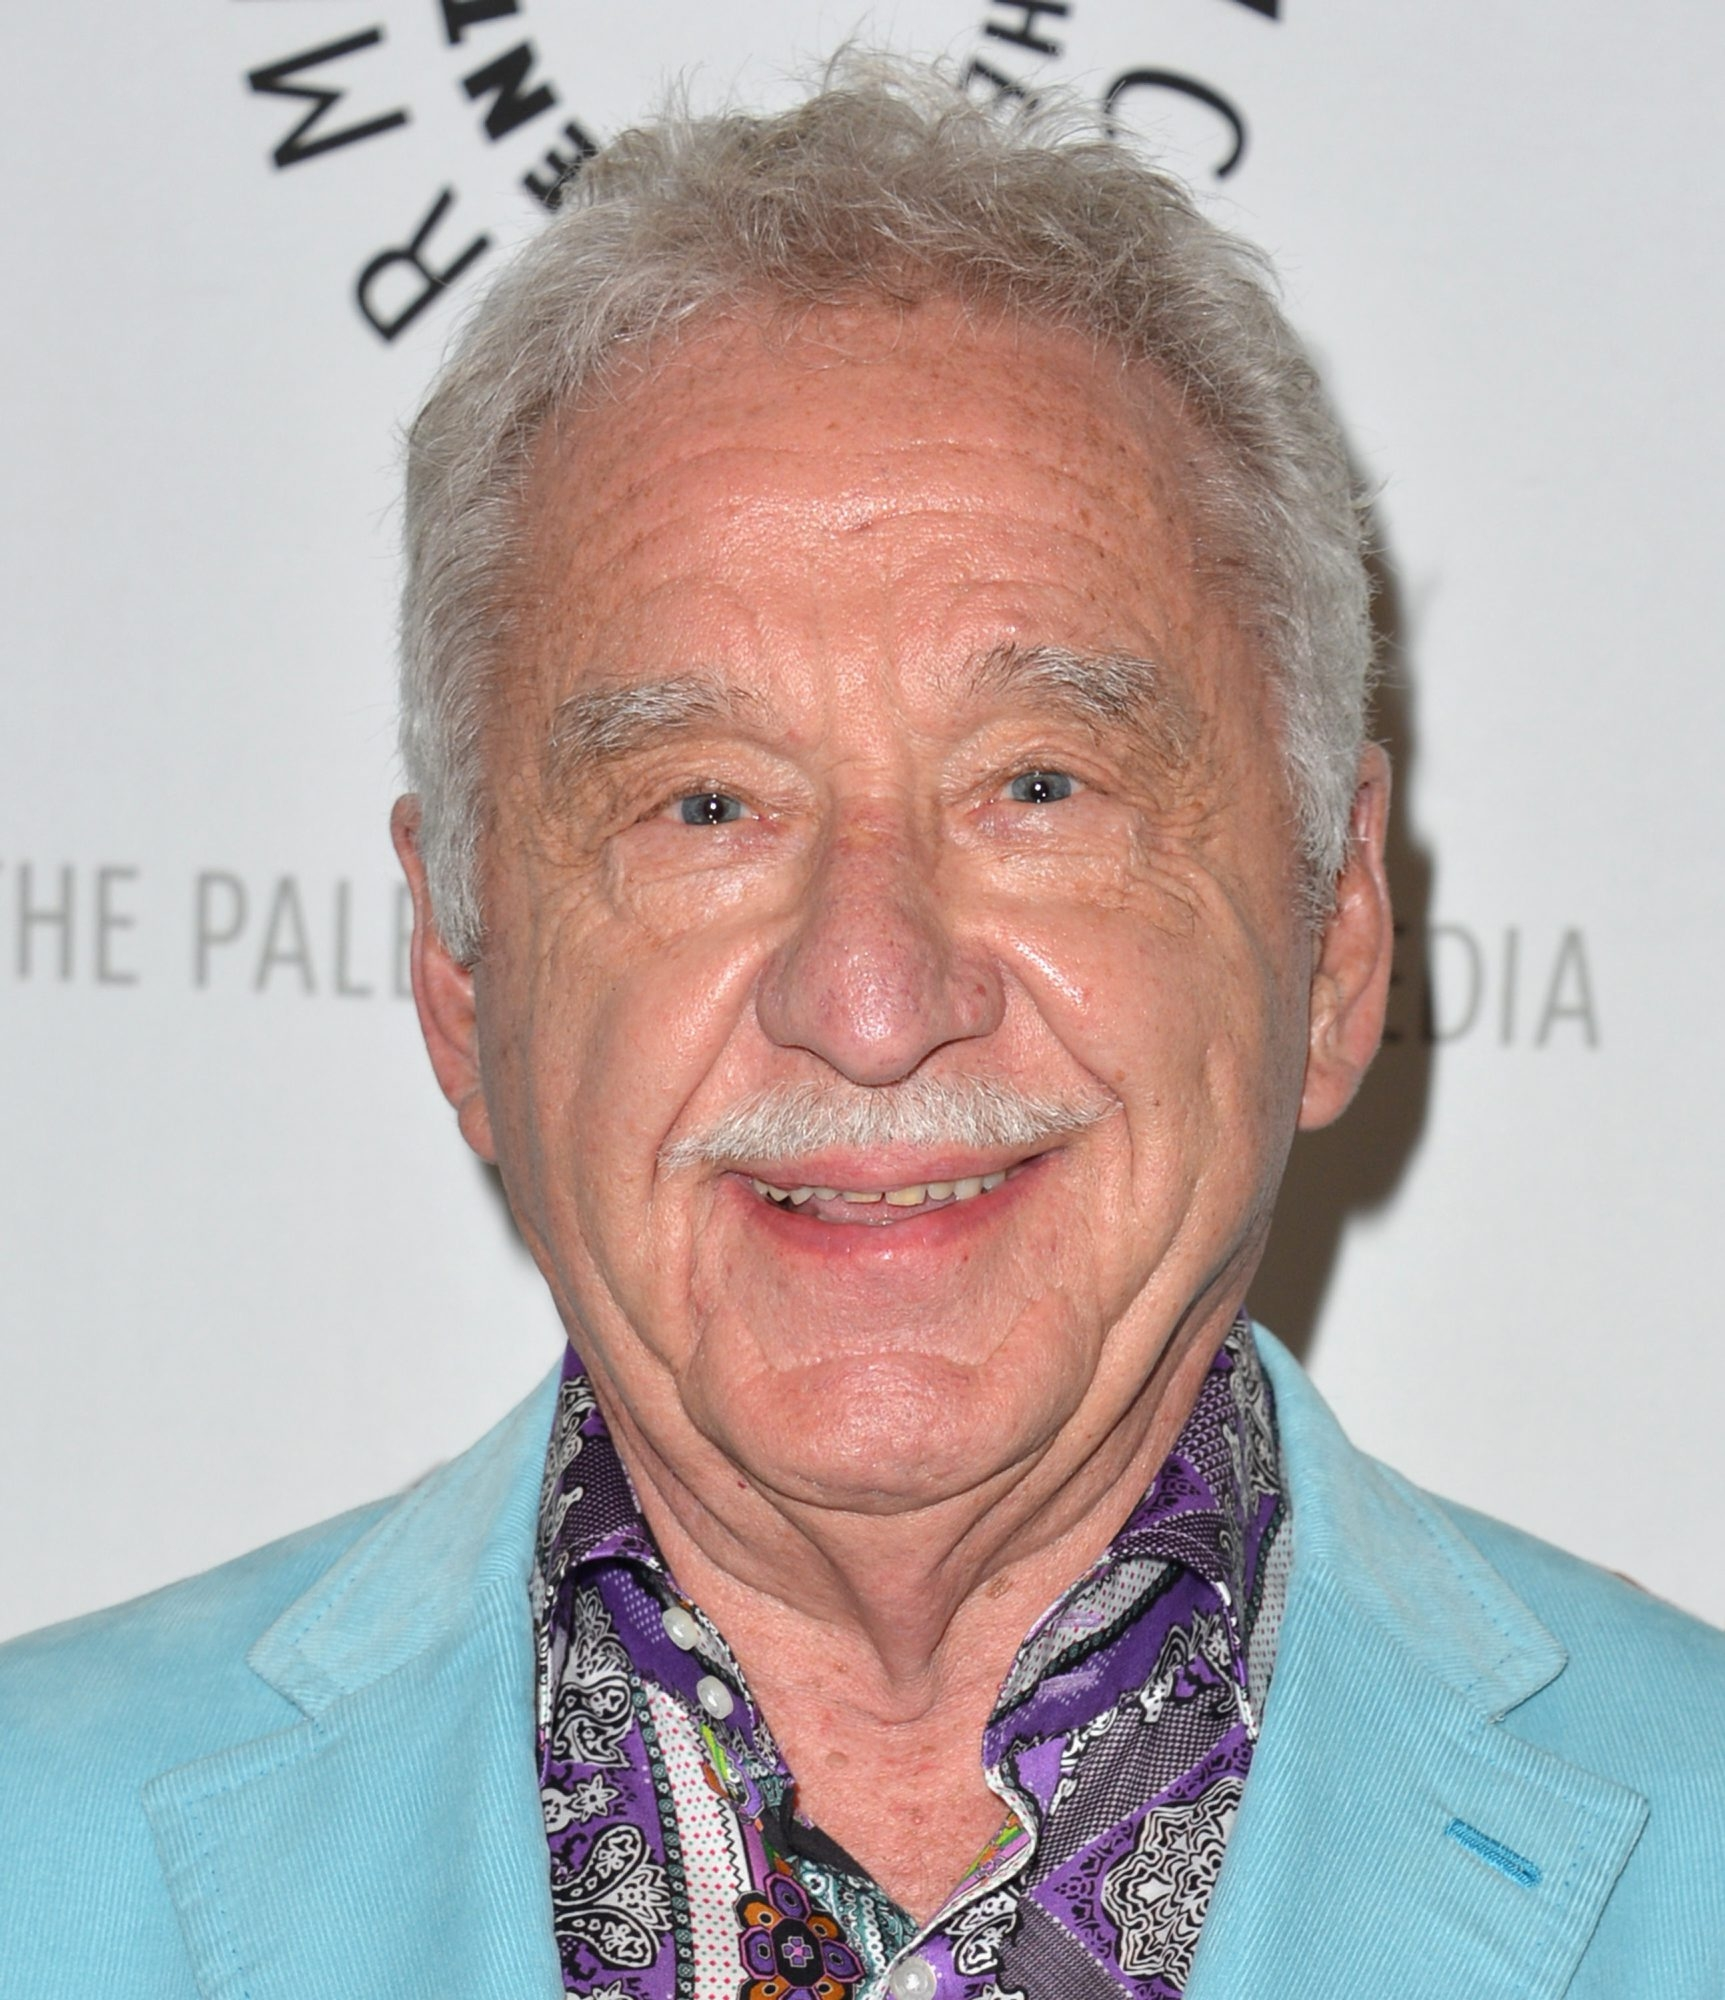 """BEVERLY HILLS, CA – MAY 03:  Musician Doc Severinsen attends a screening of the PBS documentary """"American Masters Johnny Carson: King of Late Night"""" at The Paley Center for Media on May 3, 2012 in Beverly Hills, California.  (Photo by Alberto E. Rodriguez/Getty Images)"""